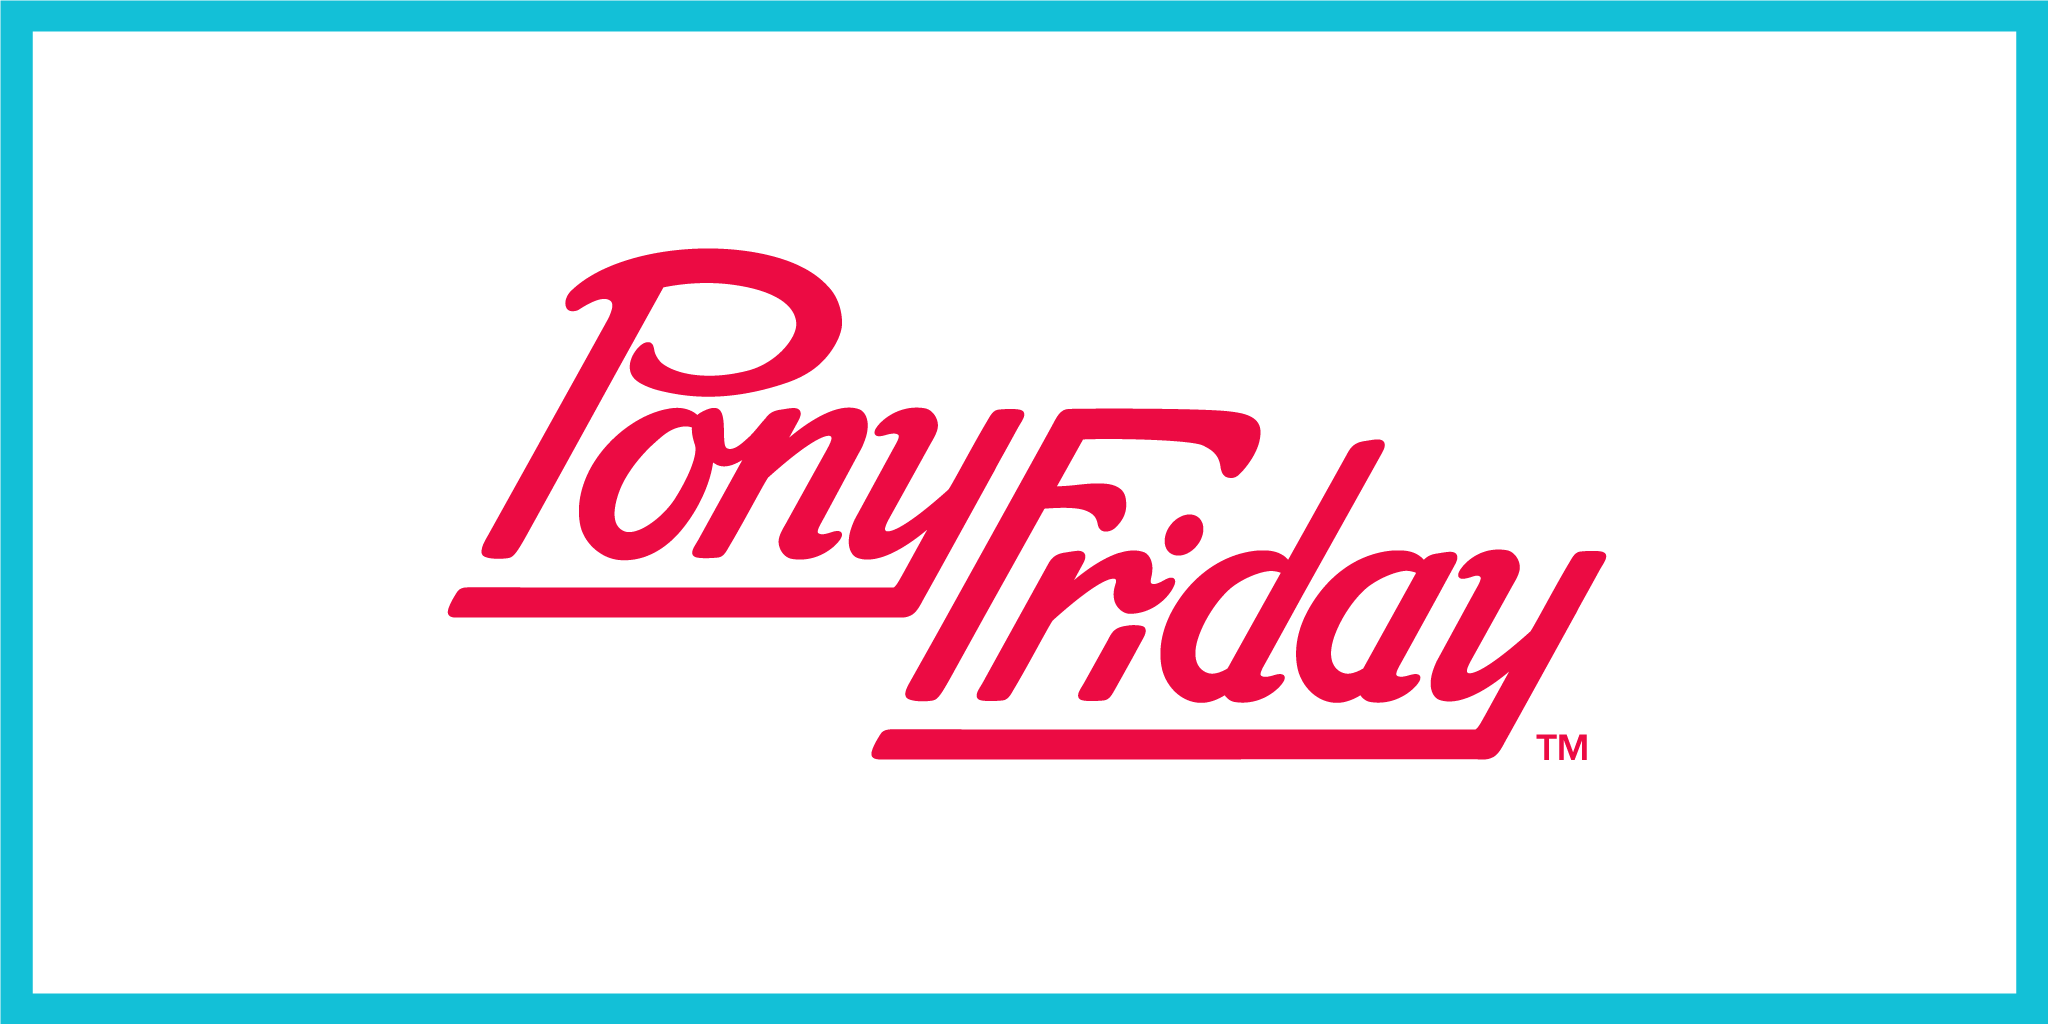 Pony-Friday-Design-Logo-Brand-Trademark-Red-White-Blue-Blog-Header.png